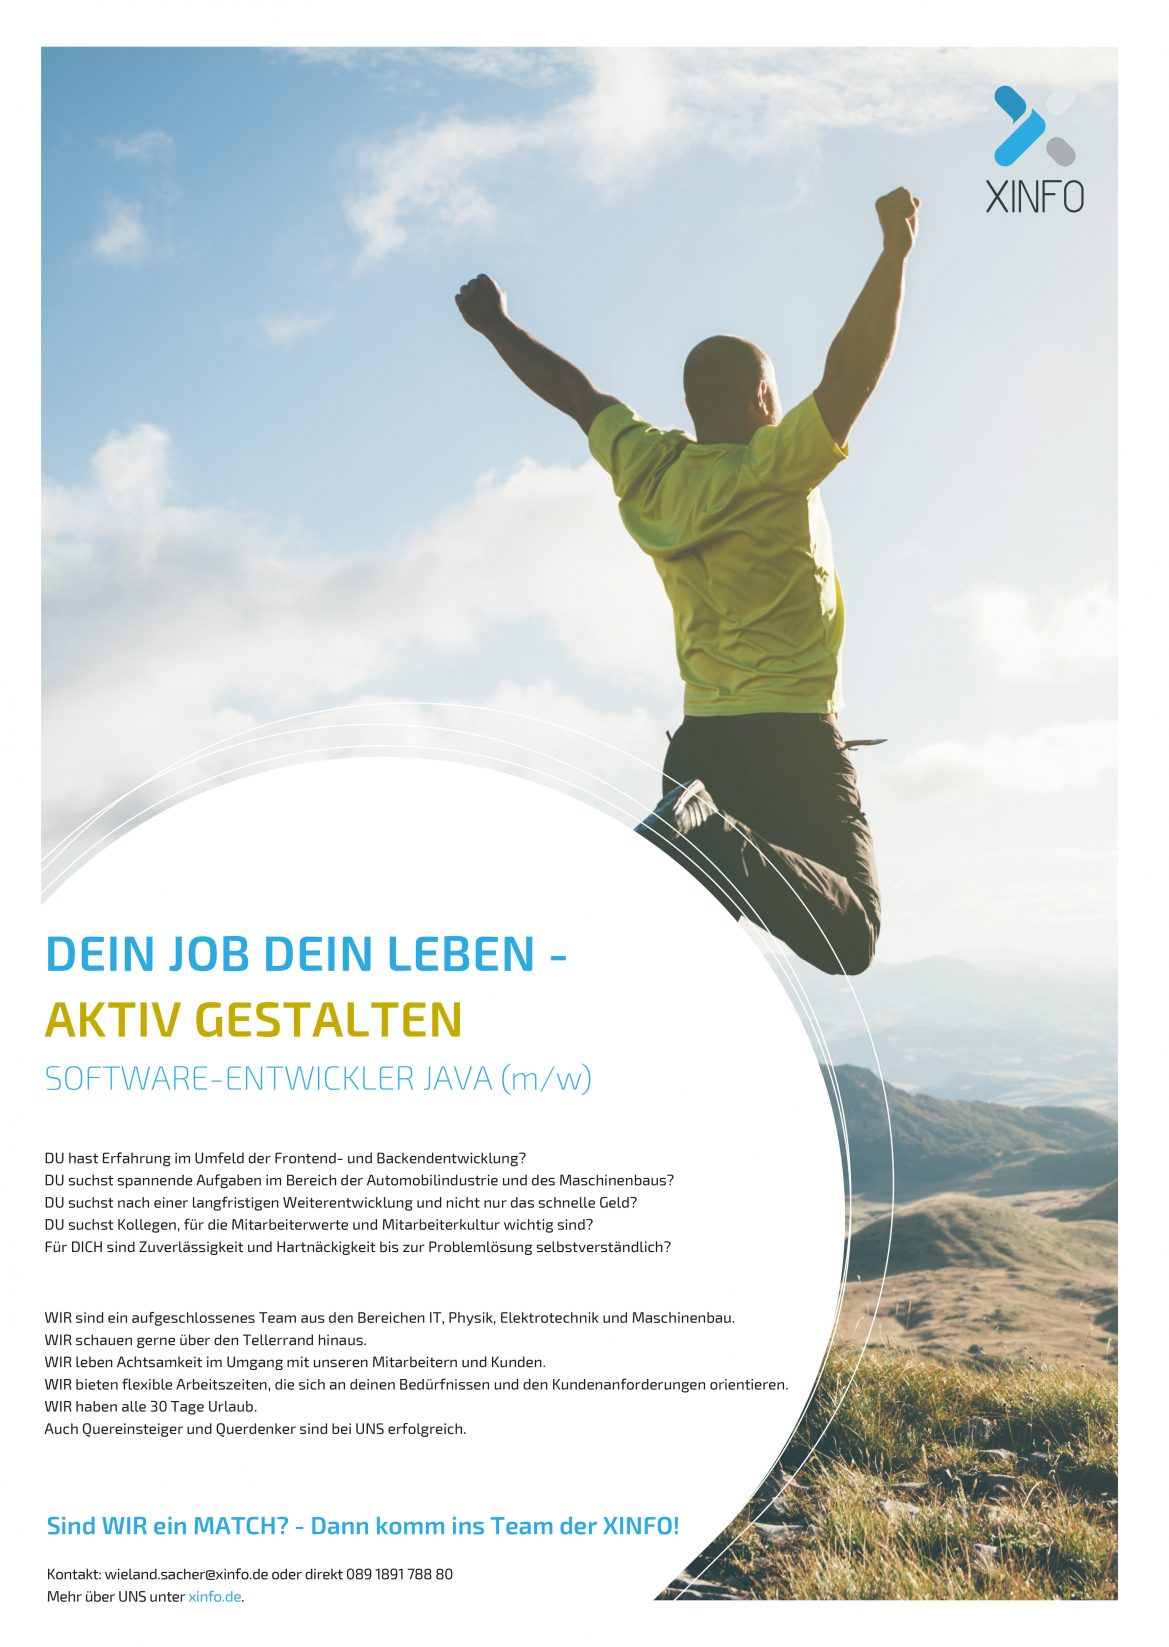 Software-Entwickler Java (m/w)